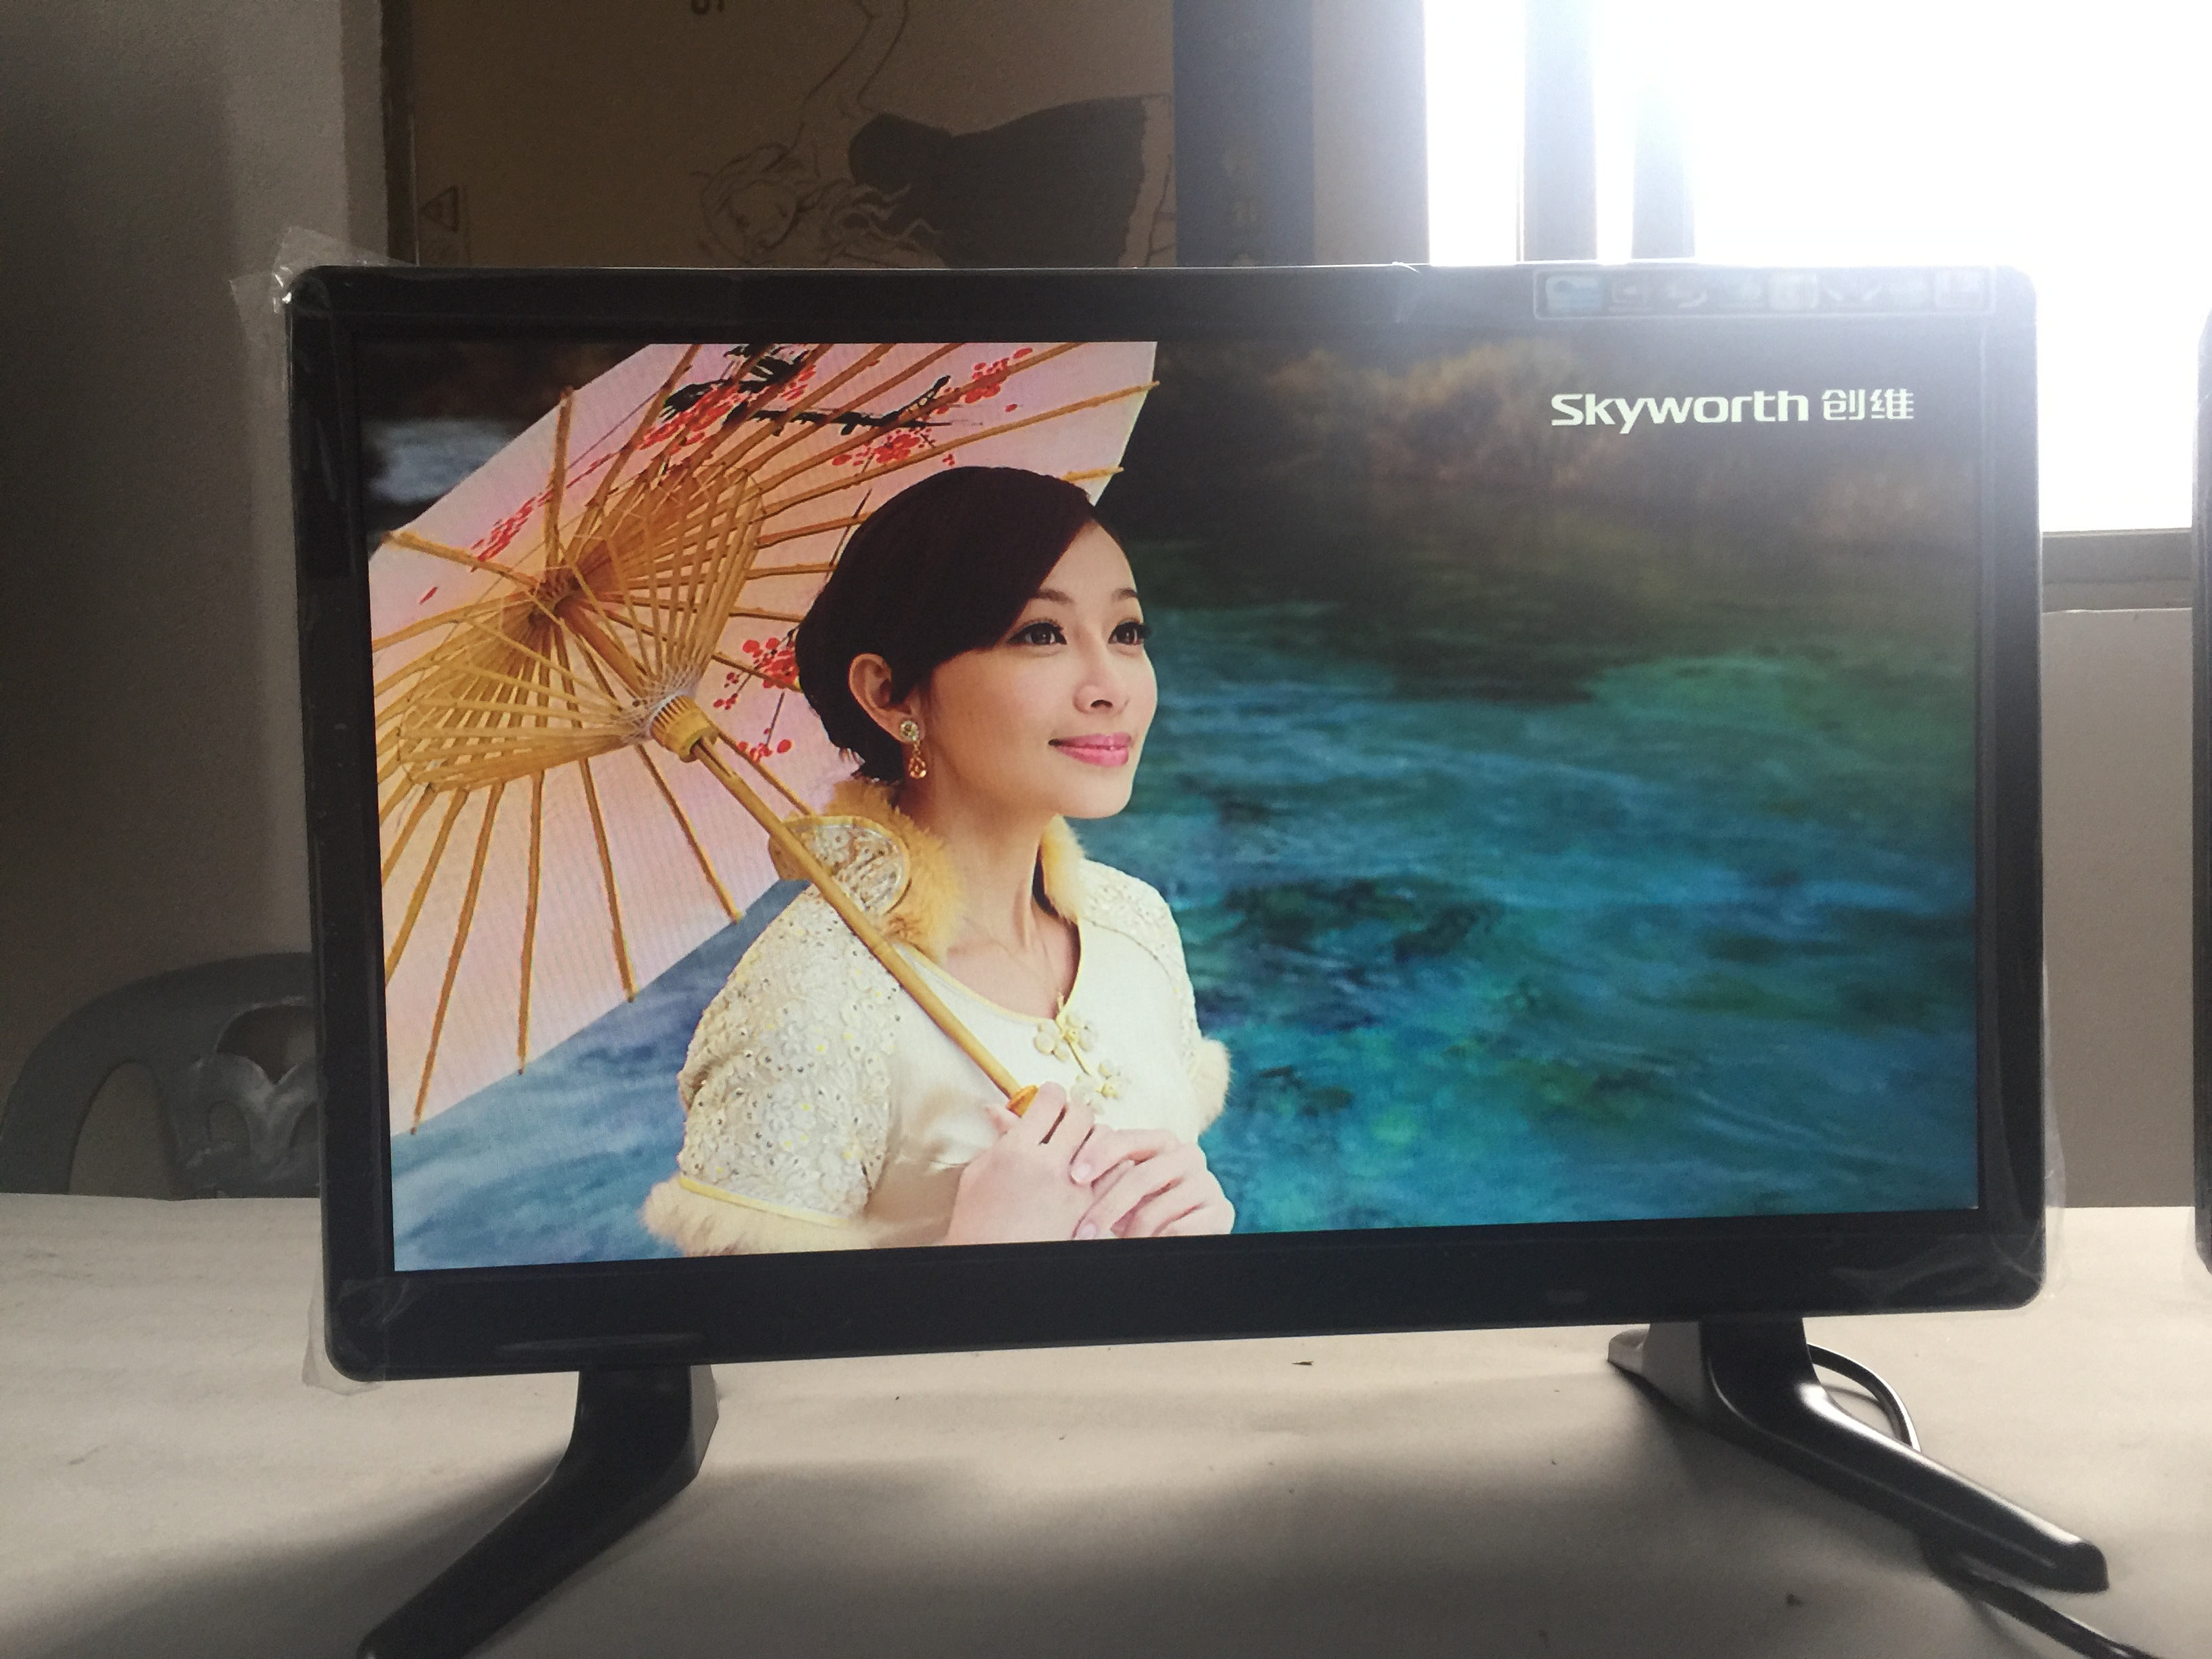 ship from Ukraine to Ukraine only 18 5 inch LED TV television (ship from Ukraine to Ukraine only) 18.5 inch LED TV television